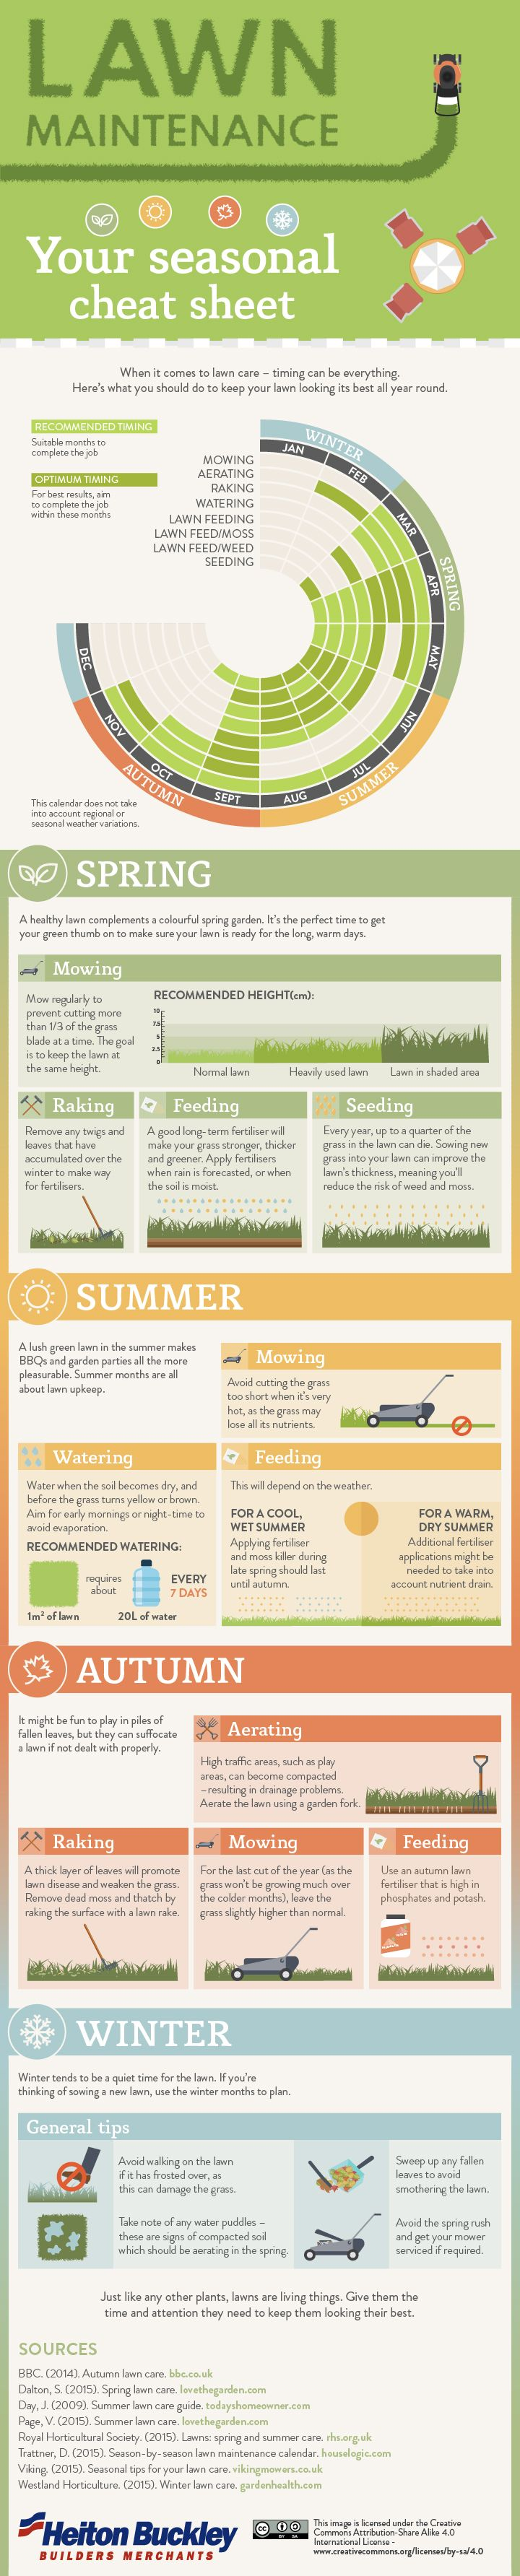 best ideas about lawn care diy landscaping ideas this chart shows the lawn maintenance you need to do every month of the year